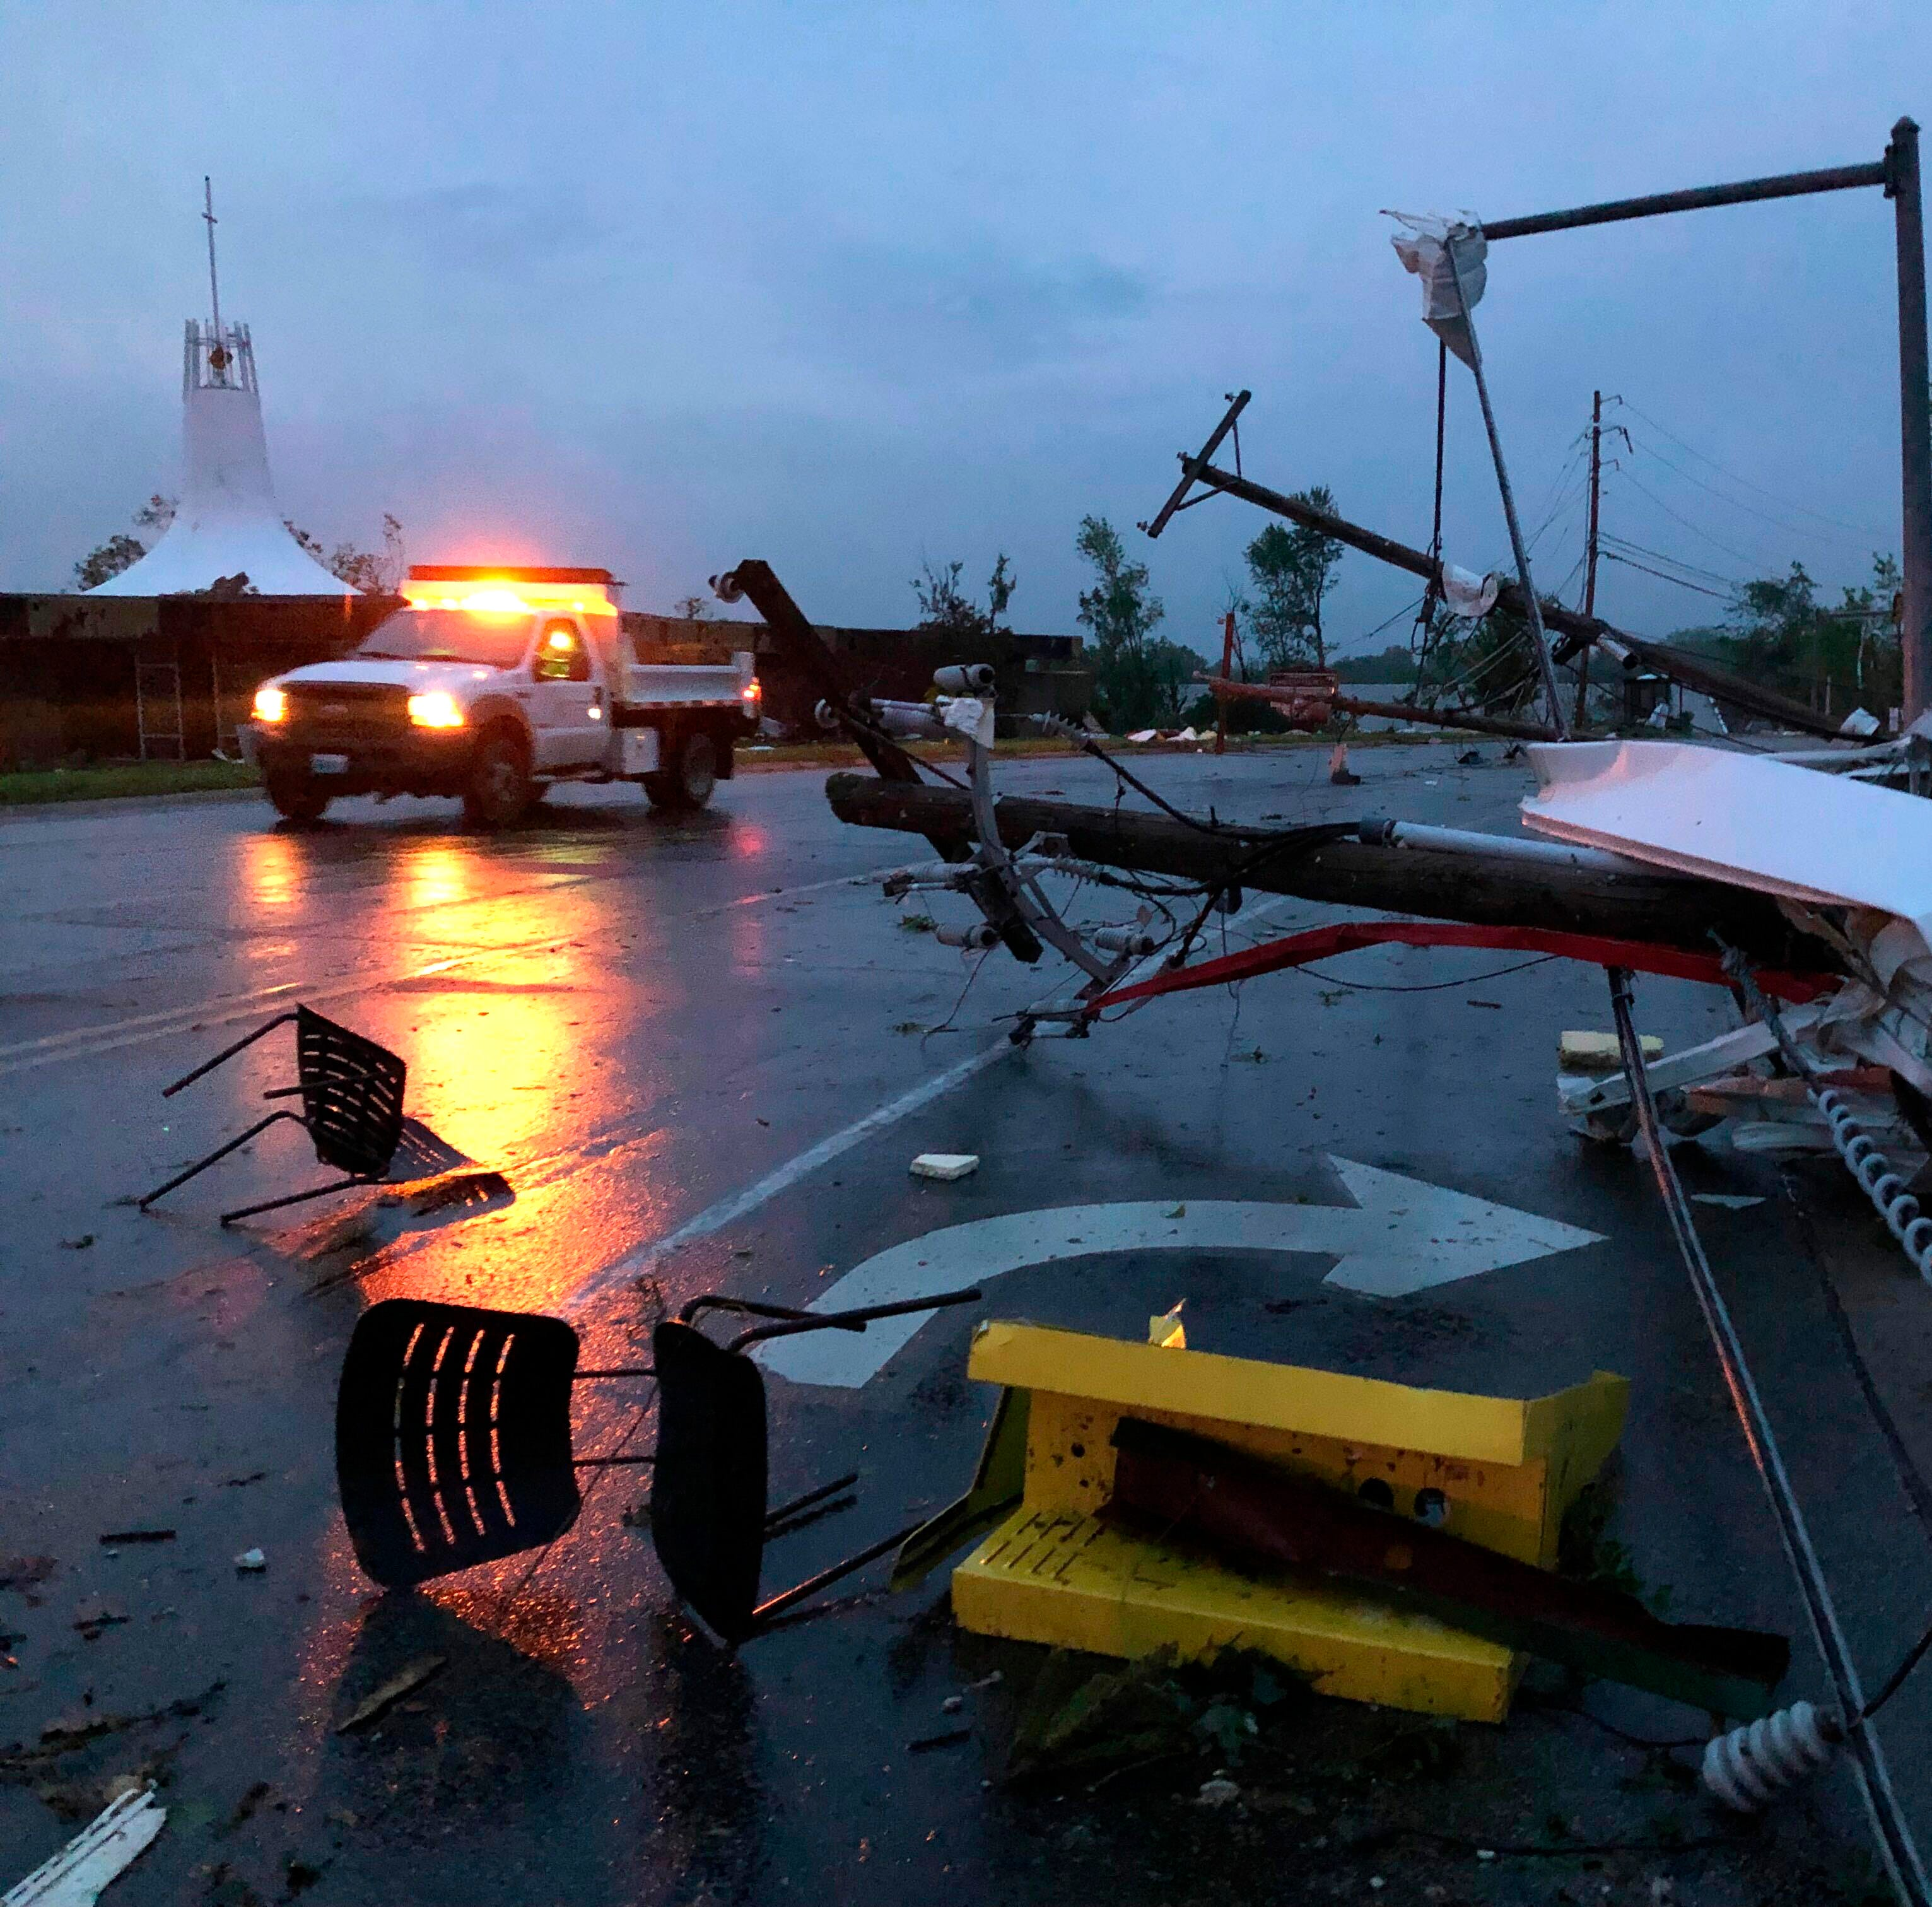 Tornado kills three in Missouri: 'Chaotic situation' in Jefferson City as severe weather sweeps state